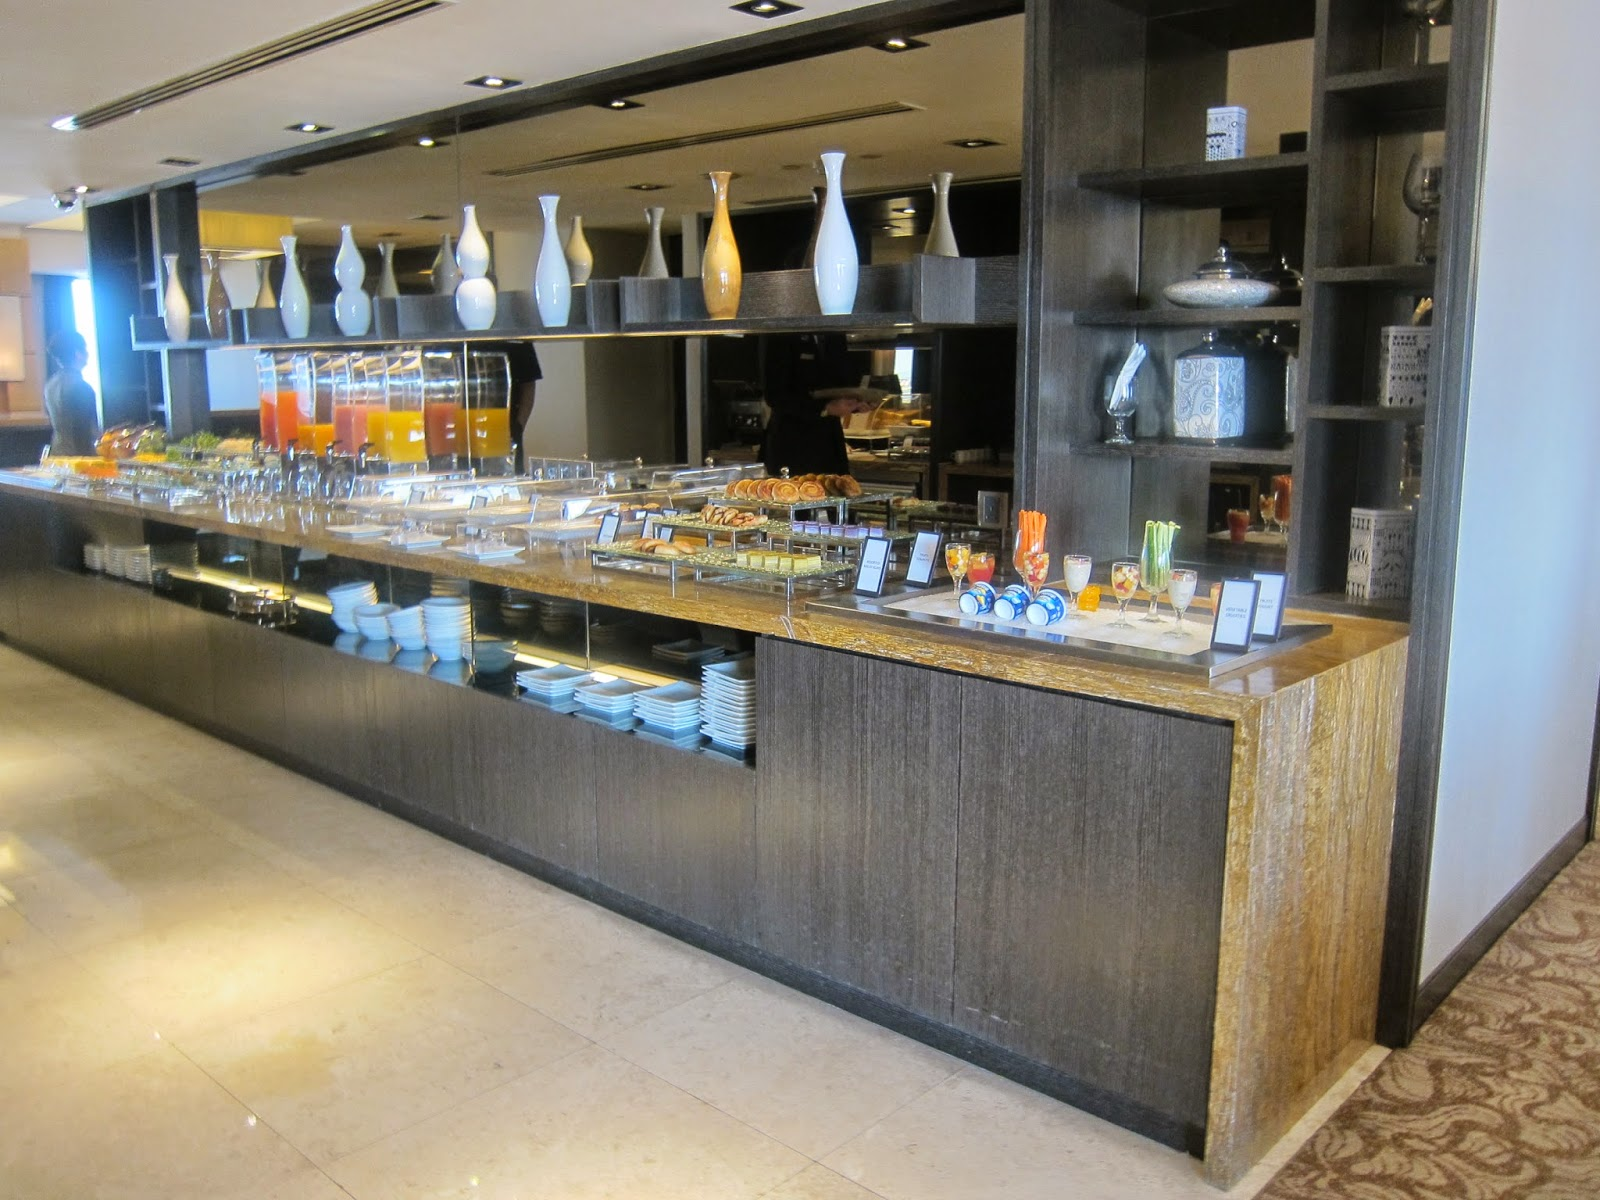 Hilton PJ Breakfast Buffet